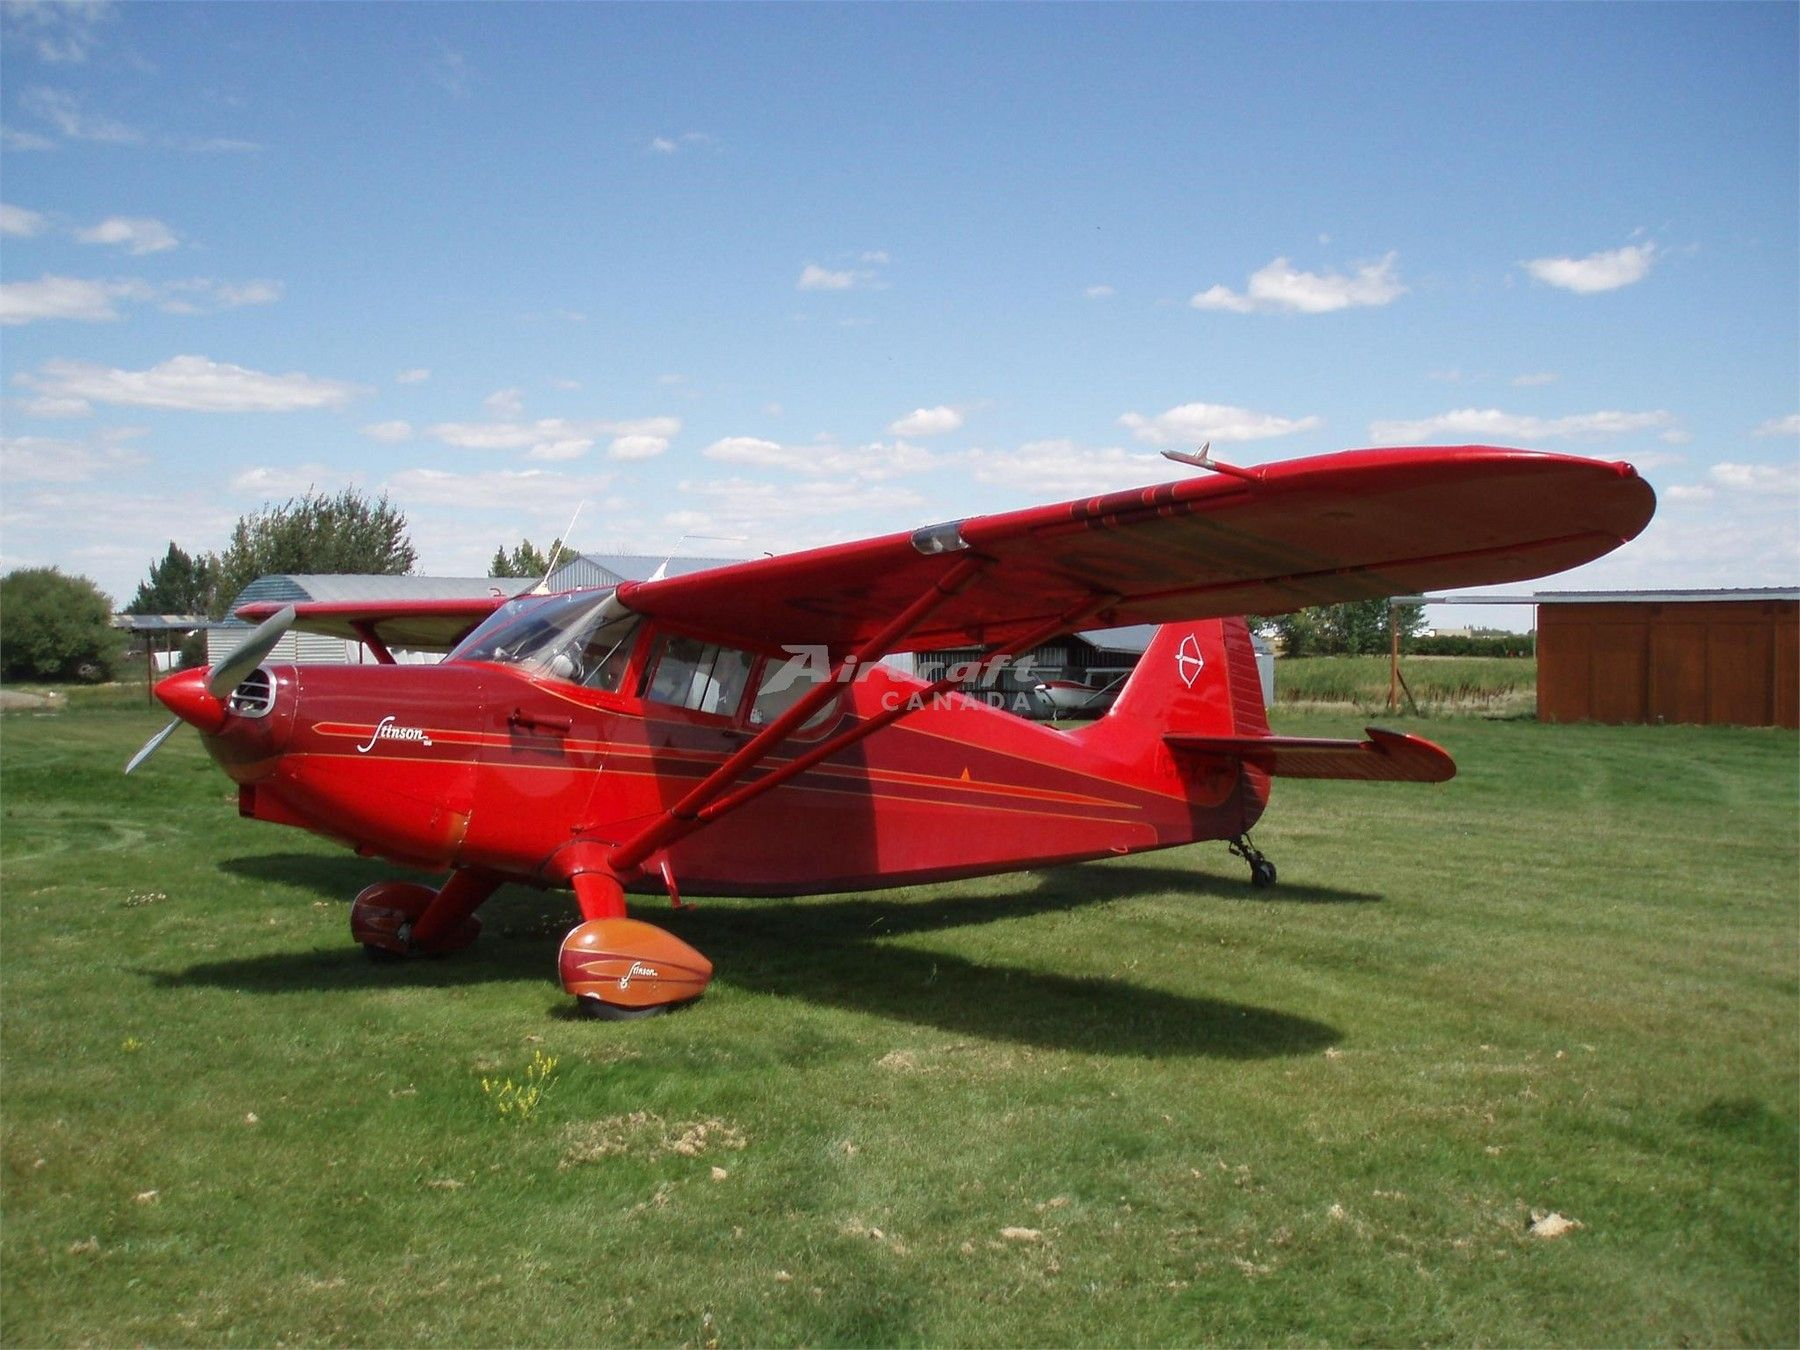 1947 Stinson 108-1 for sale in Calgary, AB Canada => http://www.airplanemart.com/aircraft-for-sale/Single-Engine-Piston/1947-Stinson-108-1/8928/